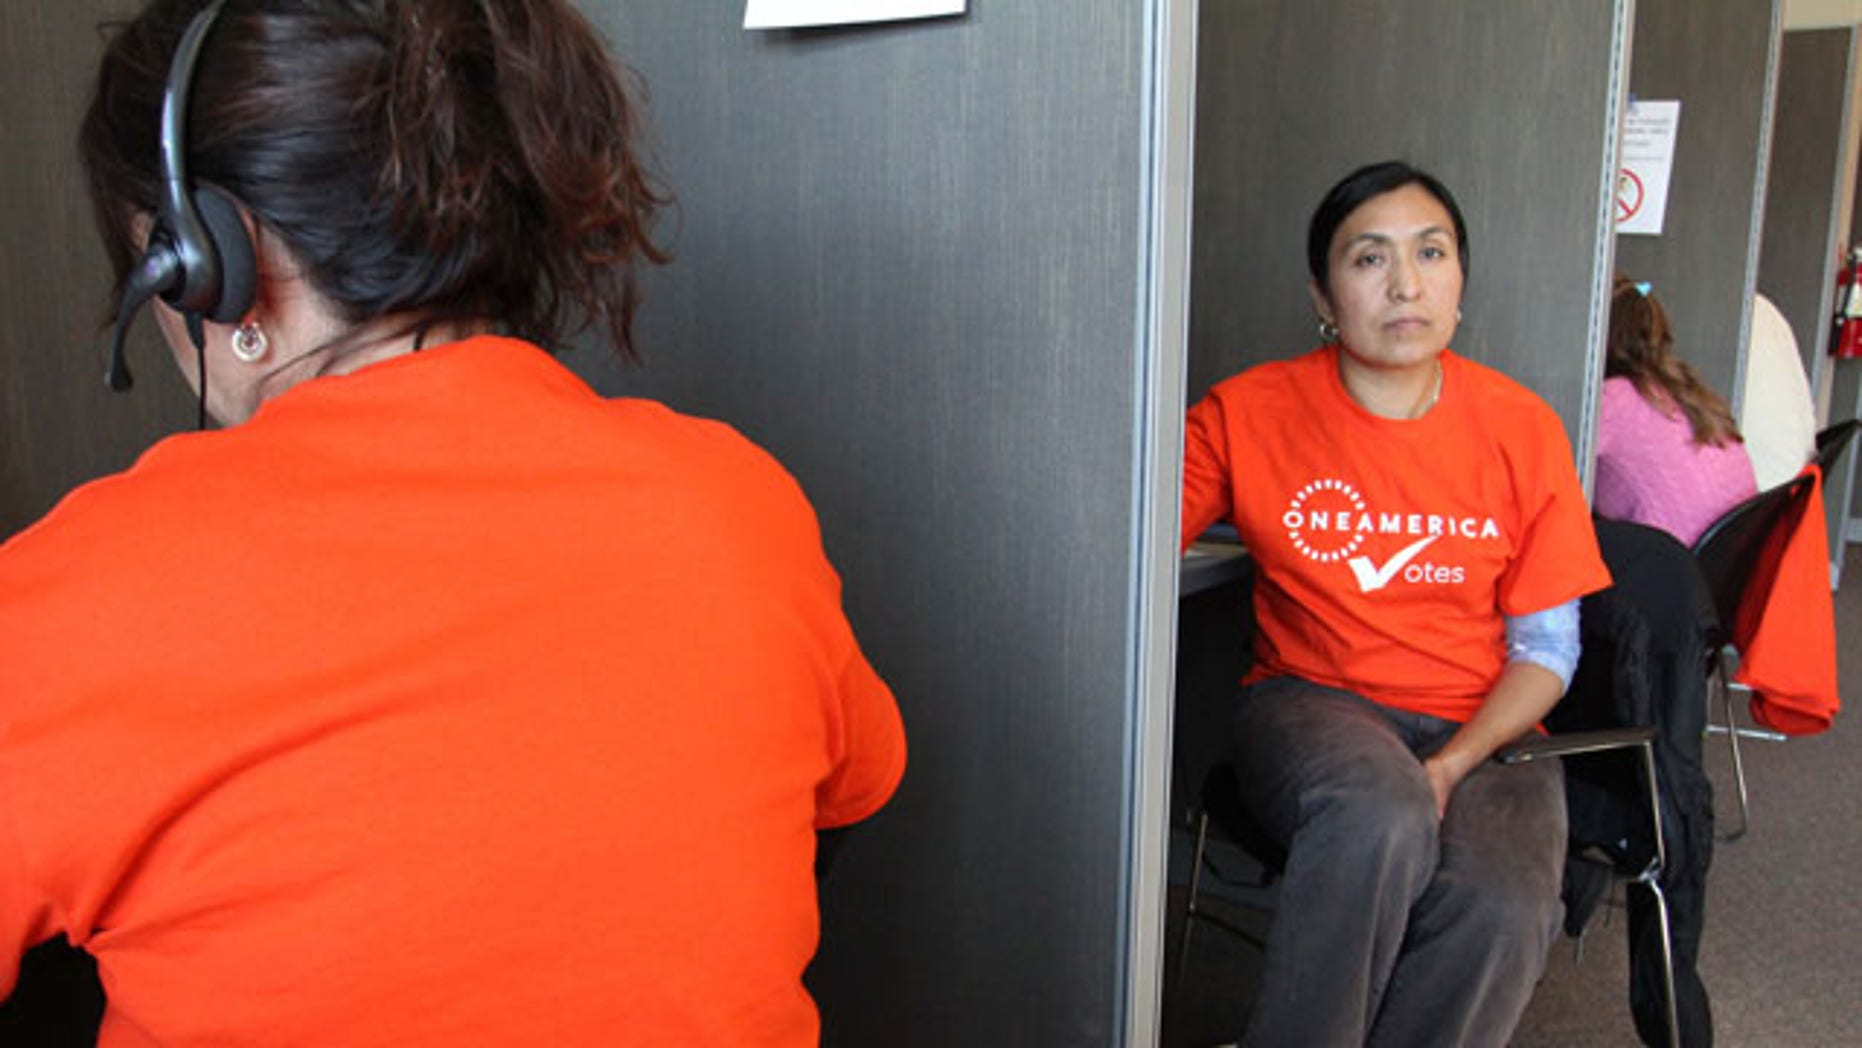 Oct. 16: Maria Gianni, an illegal immigrant, volunteers with OneAmerica Votes at a phone bank in Seattle. The organization has launched a vote drive targeting naturalized citizen voters.